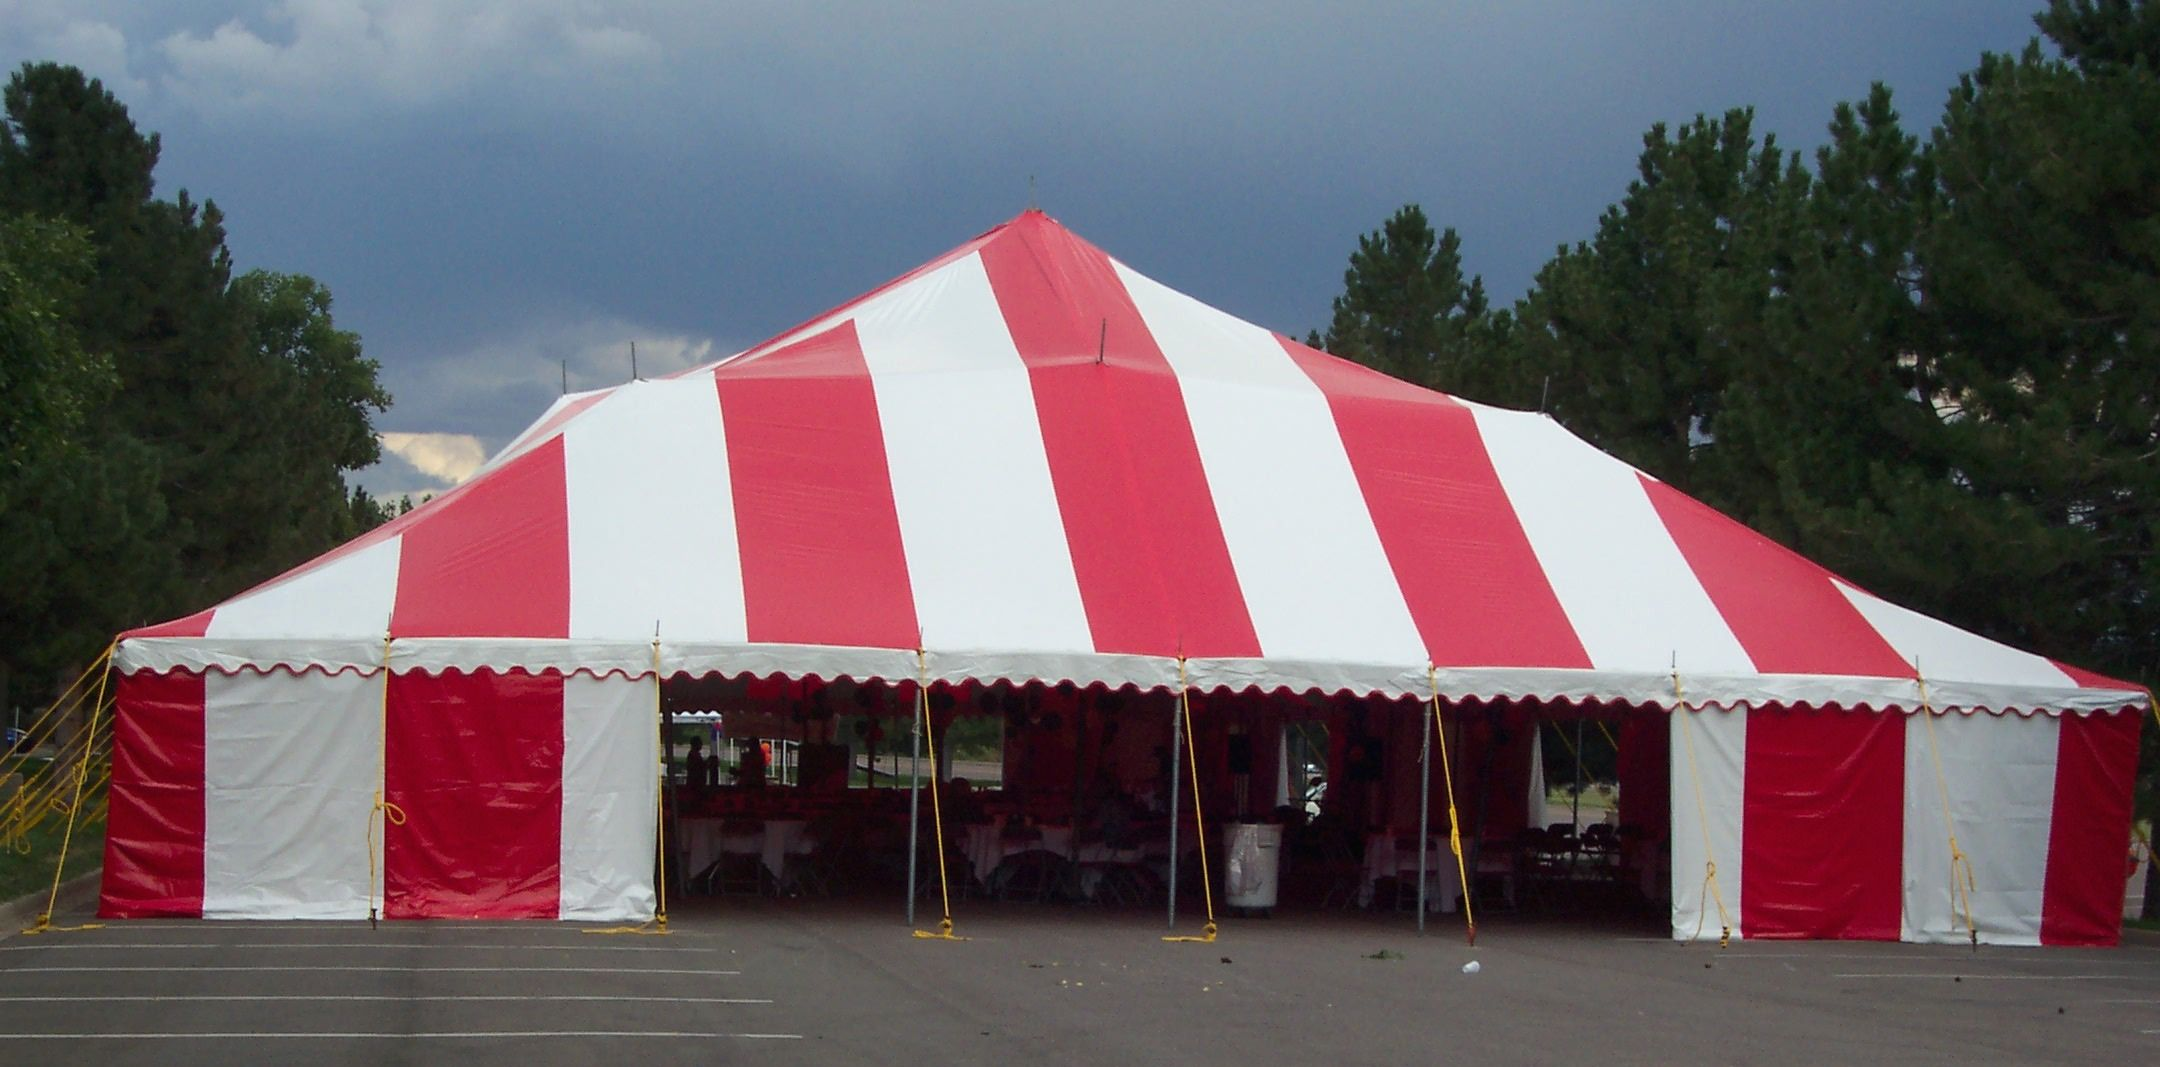 Festival Tent Tent Tent Awning Festival